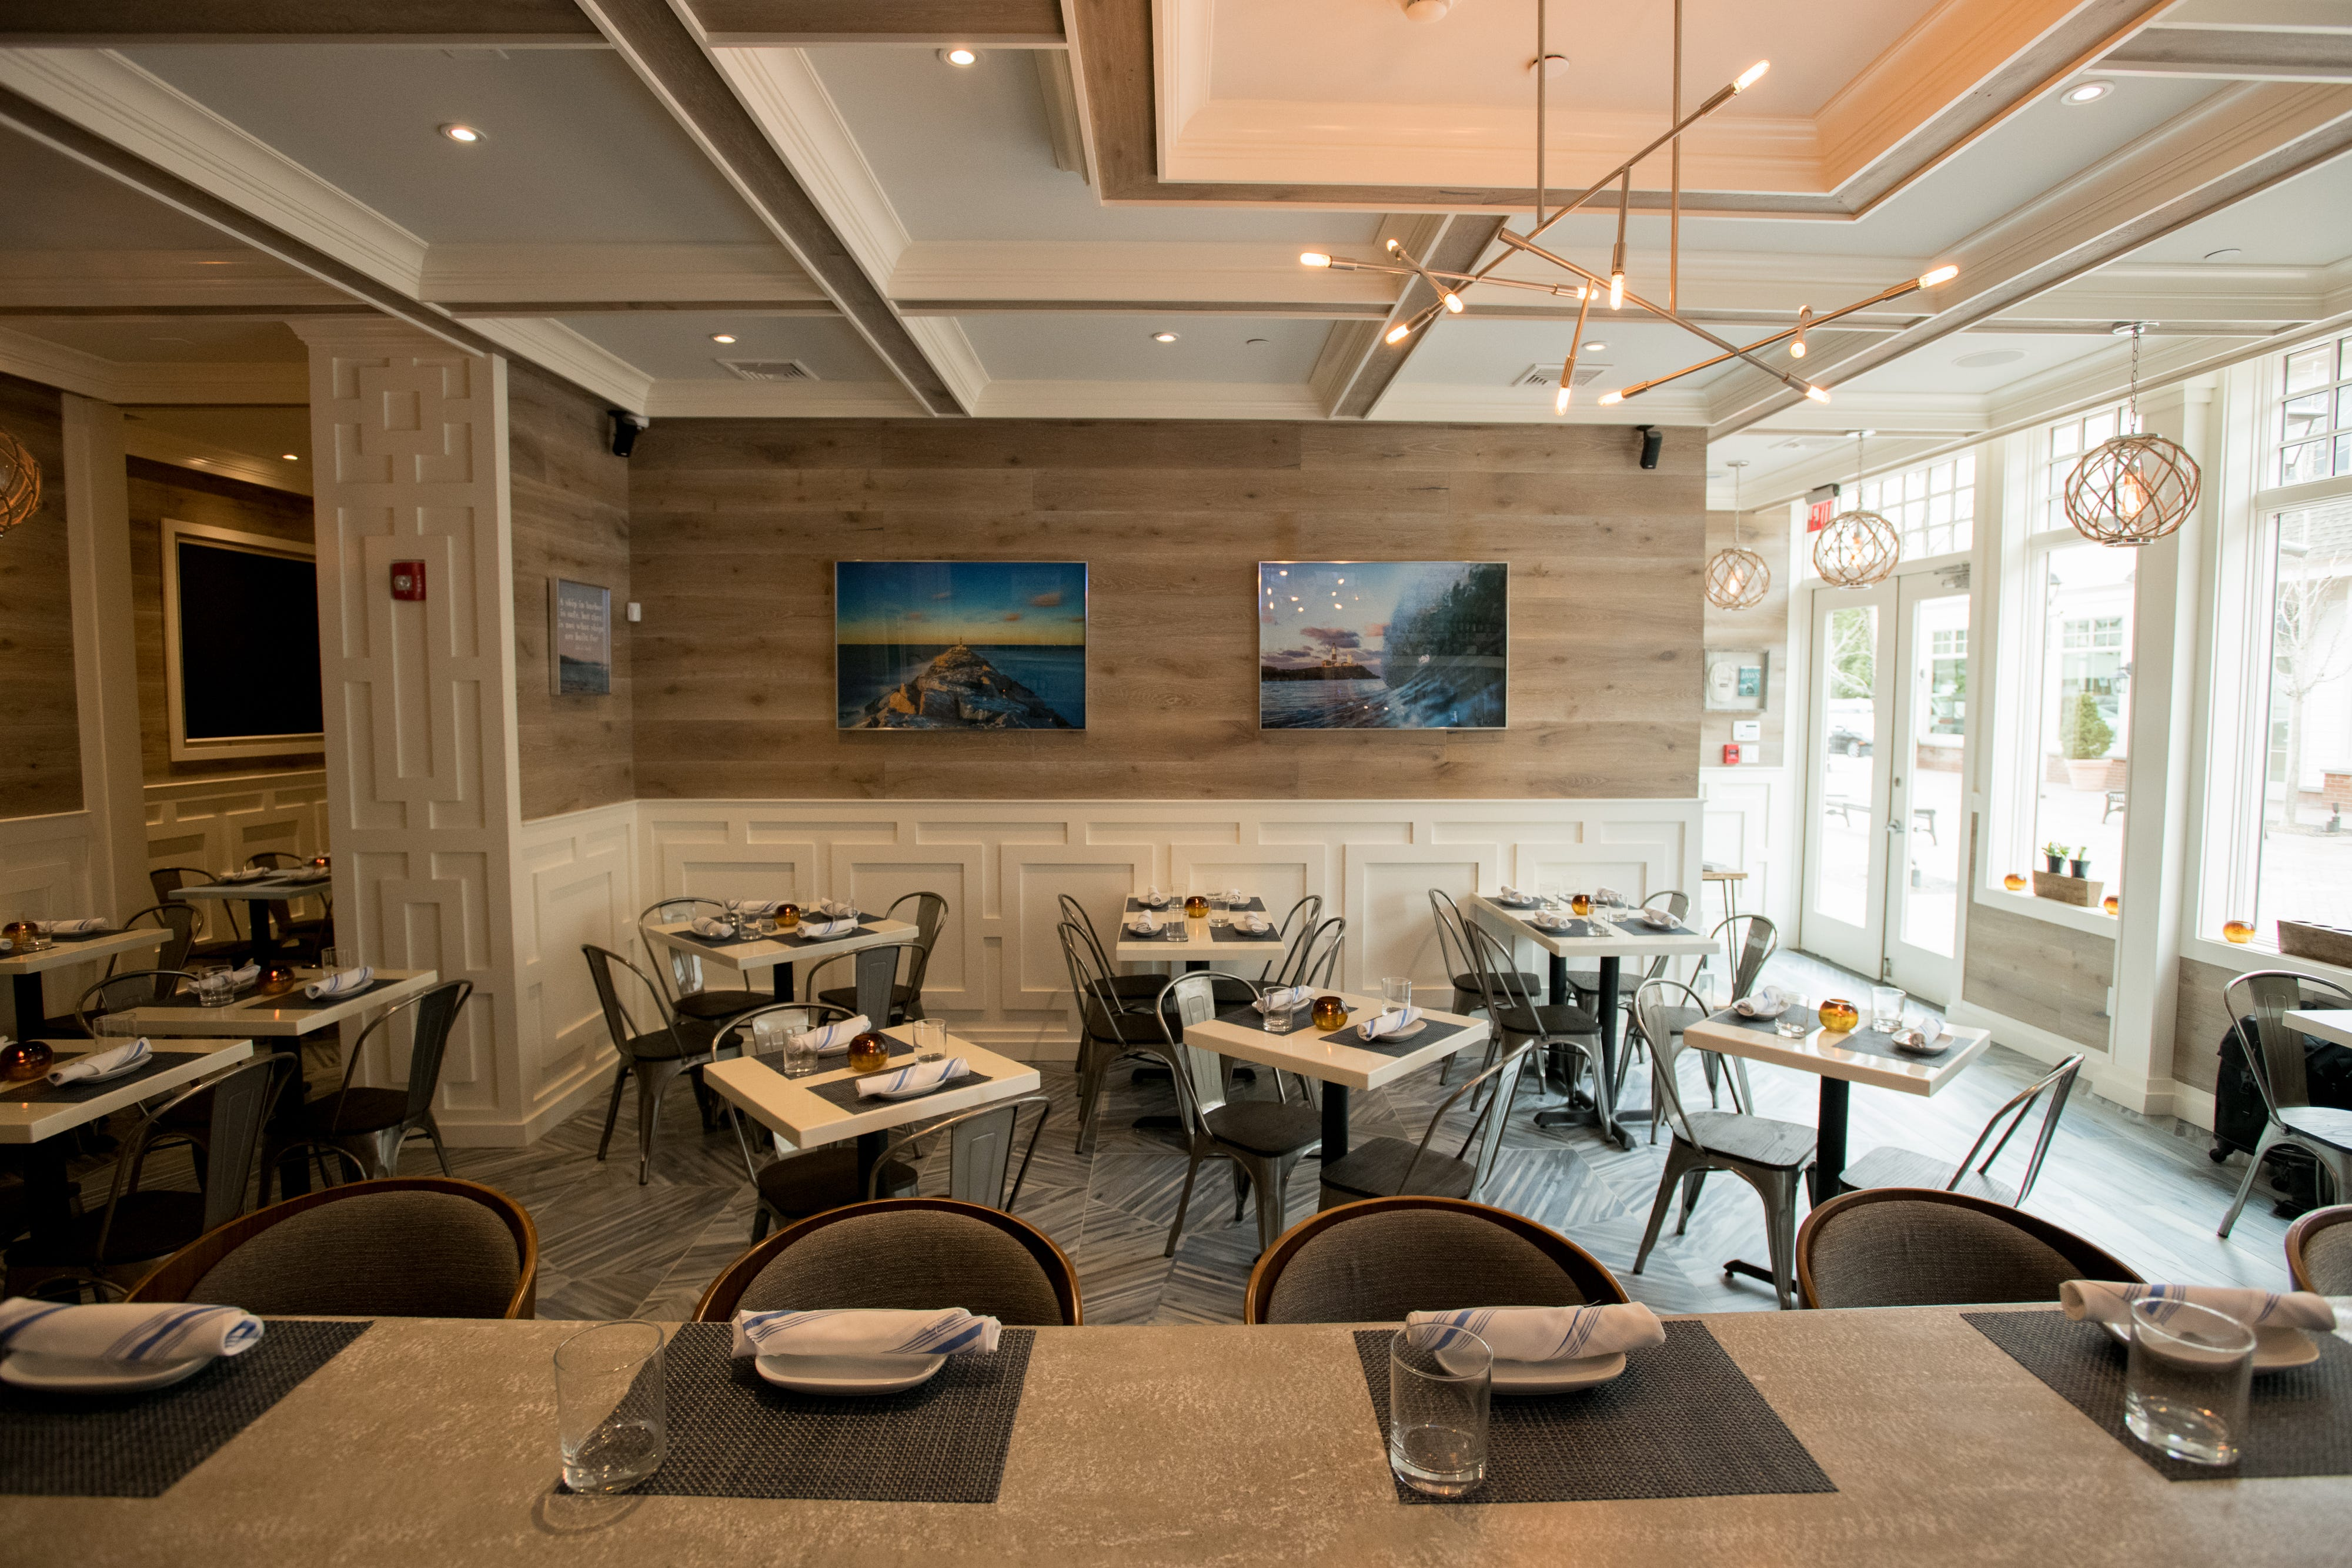 Tauk Kitchen In Armonk Has A Coastal Vibe Filled With Driftwood And  Wainscotting. (Photo: Cathy Pinsky)